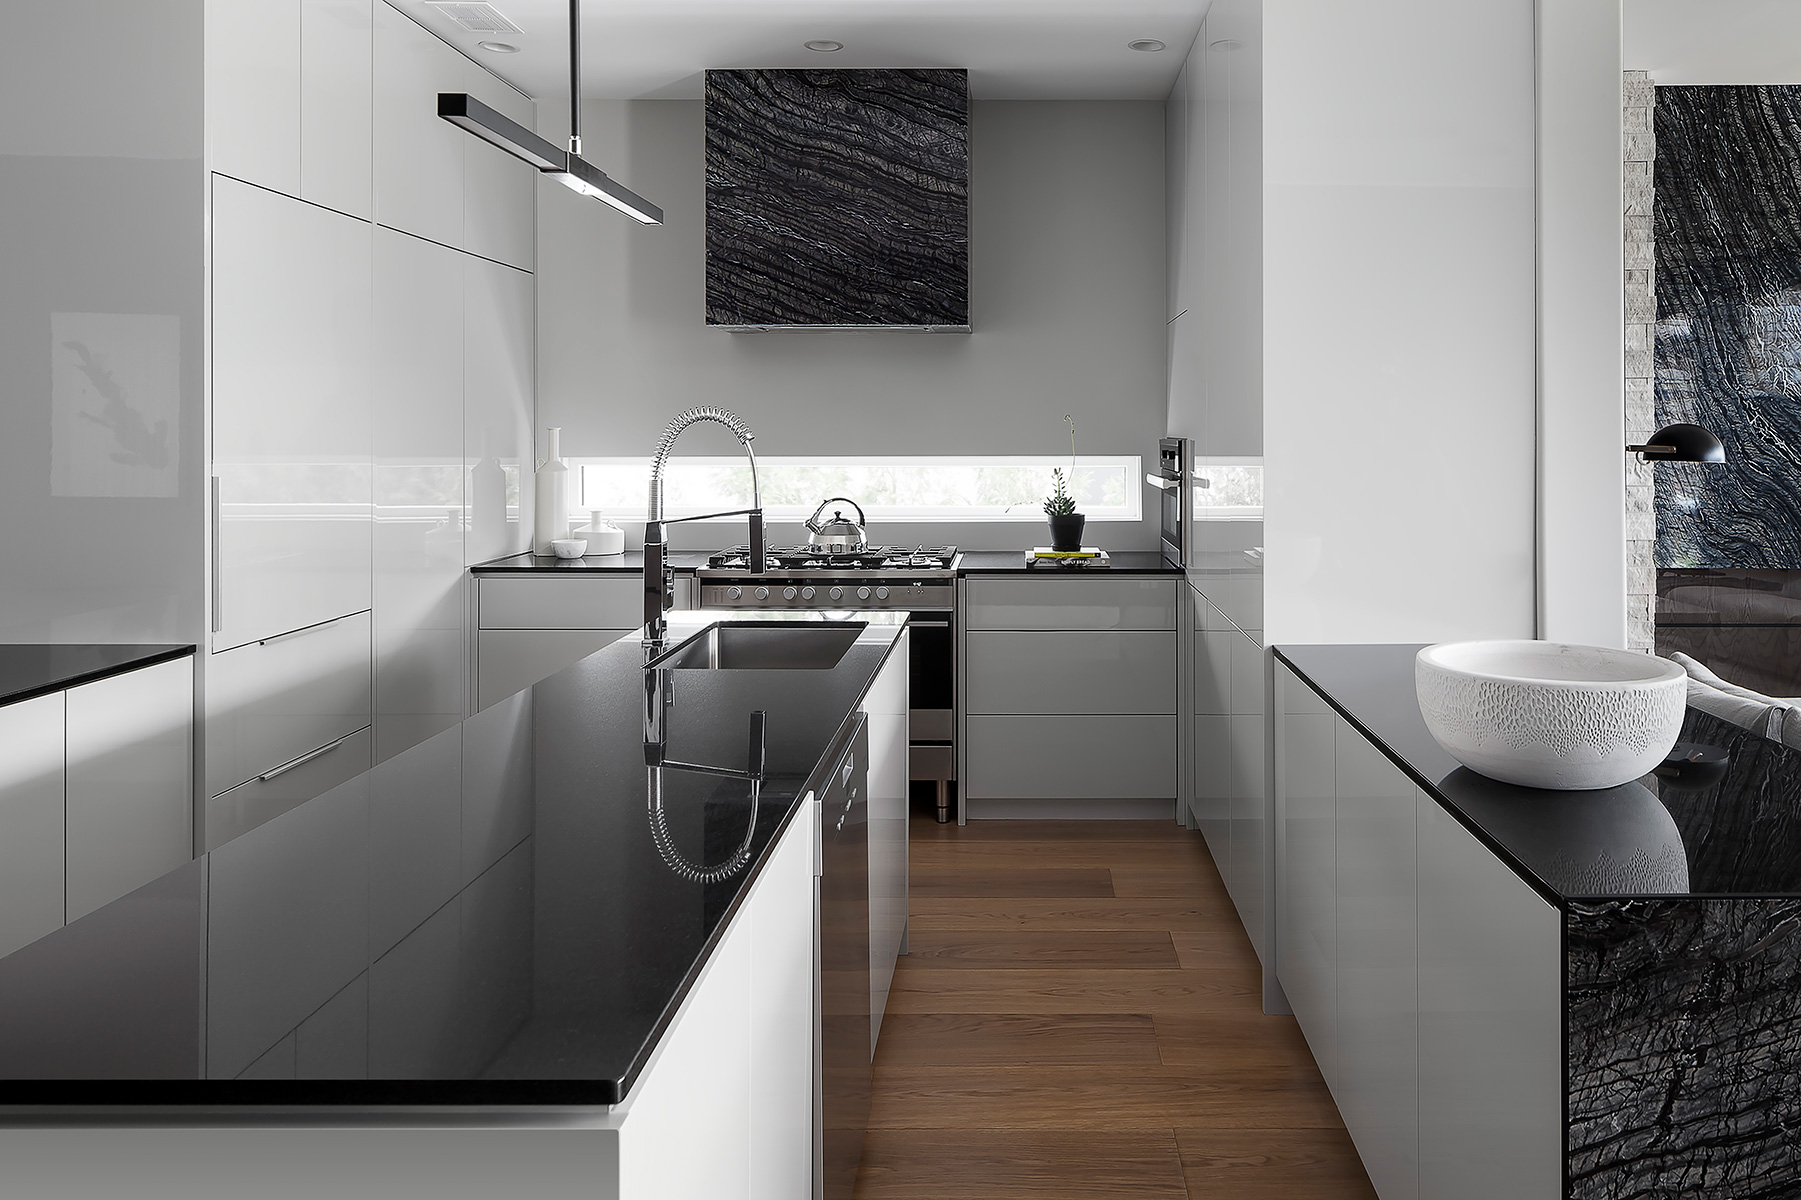 London Home Builders Millstone Homes - Home 1 Kitchen One Point Final